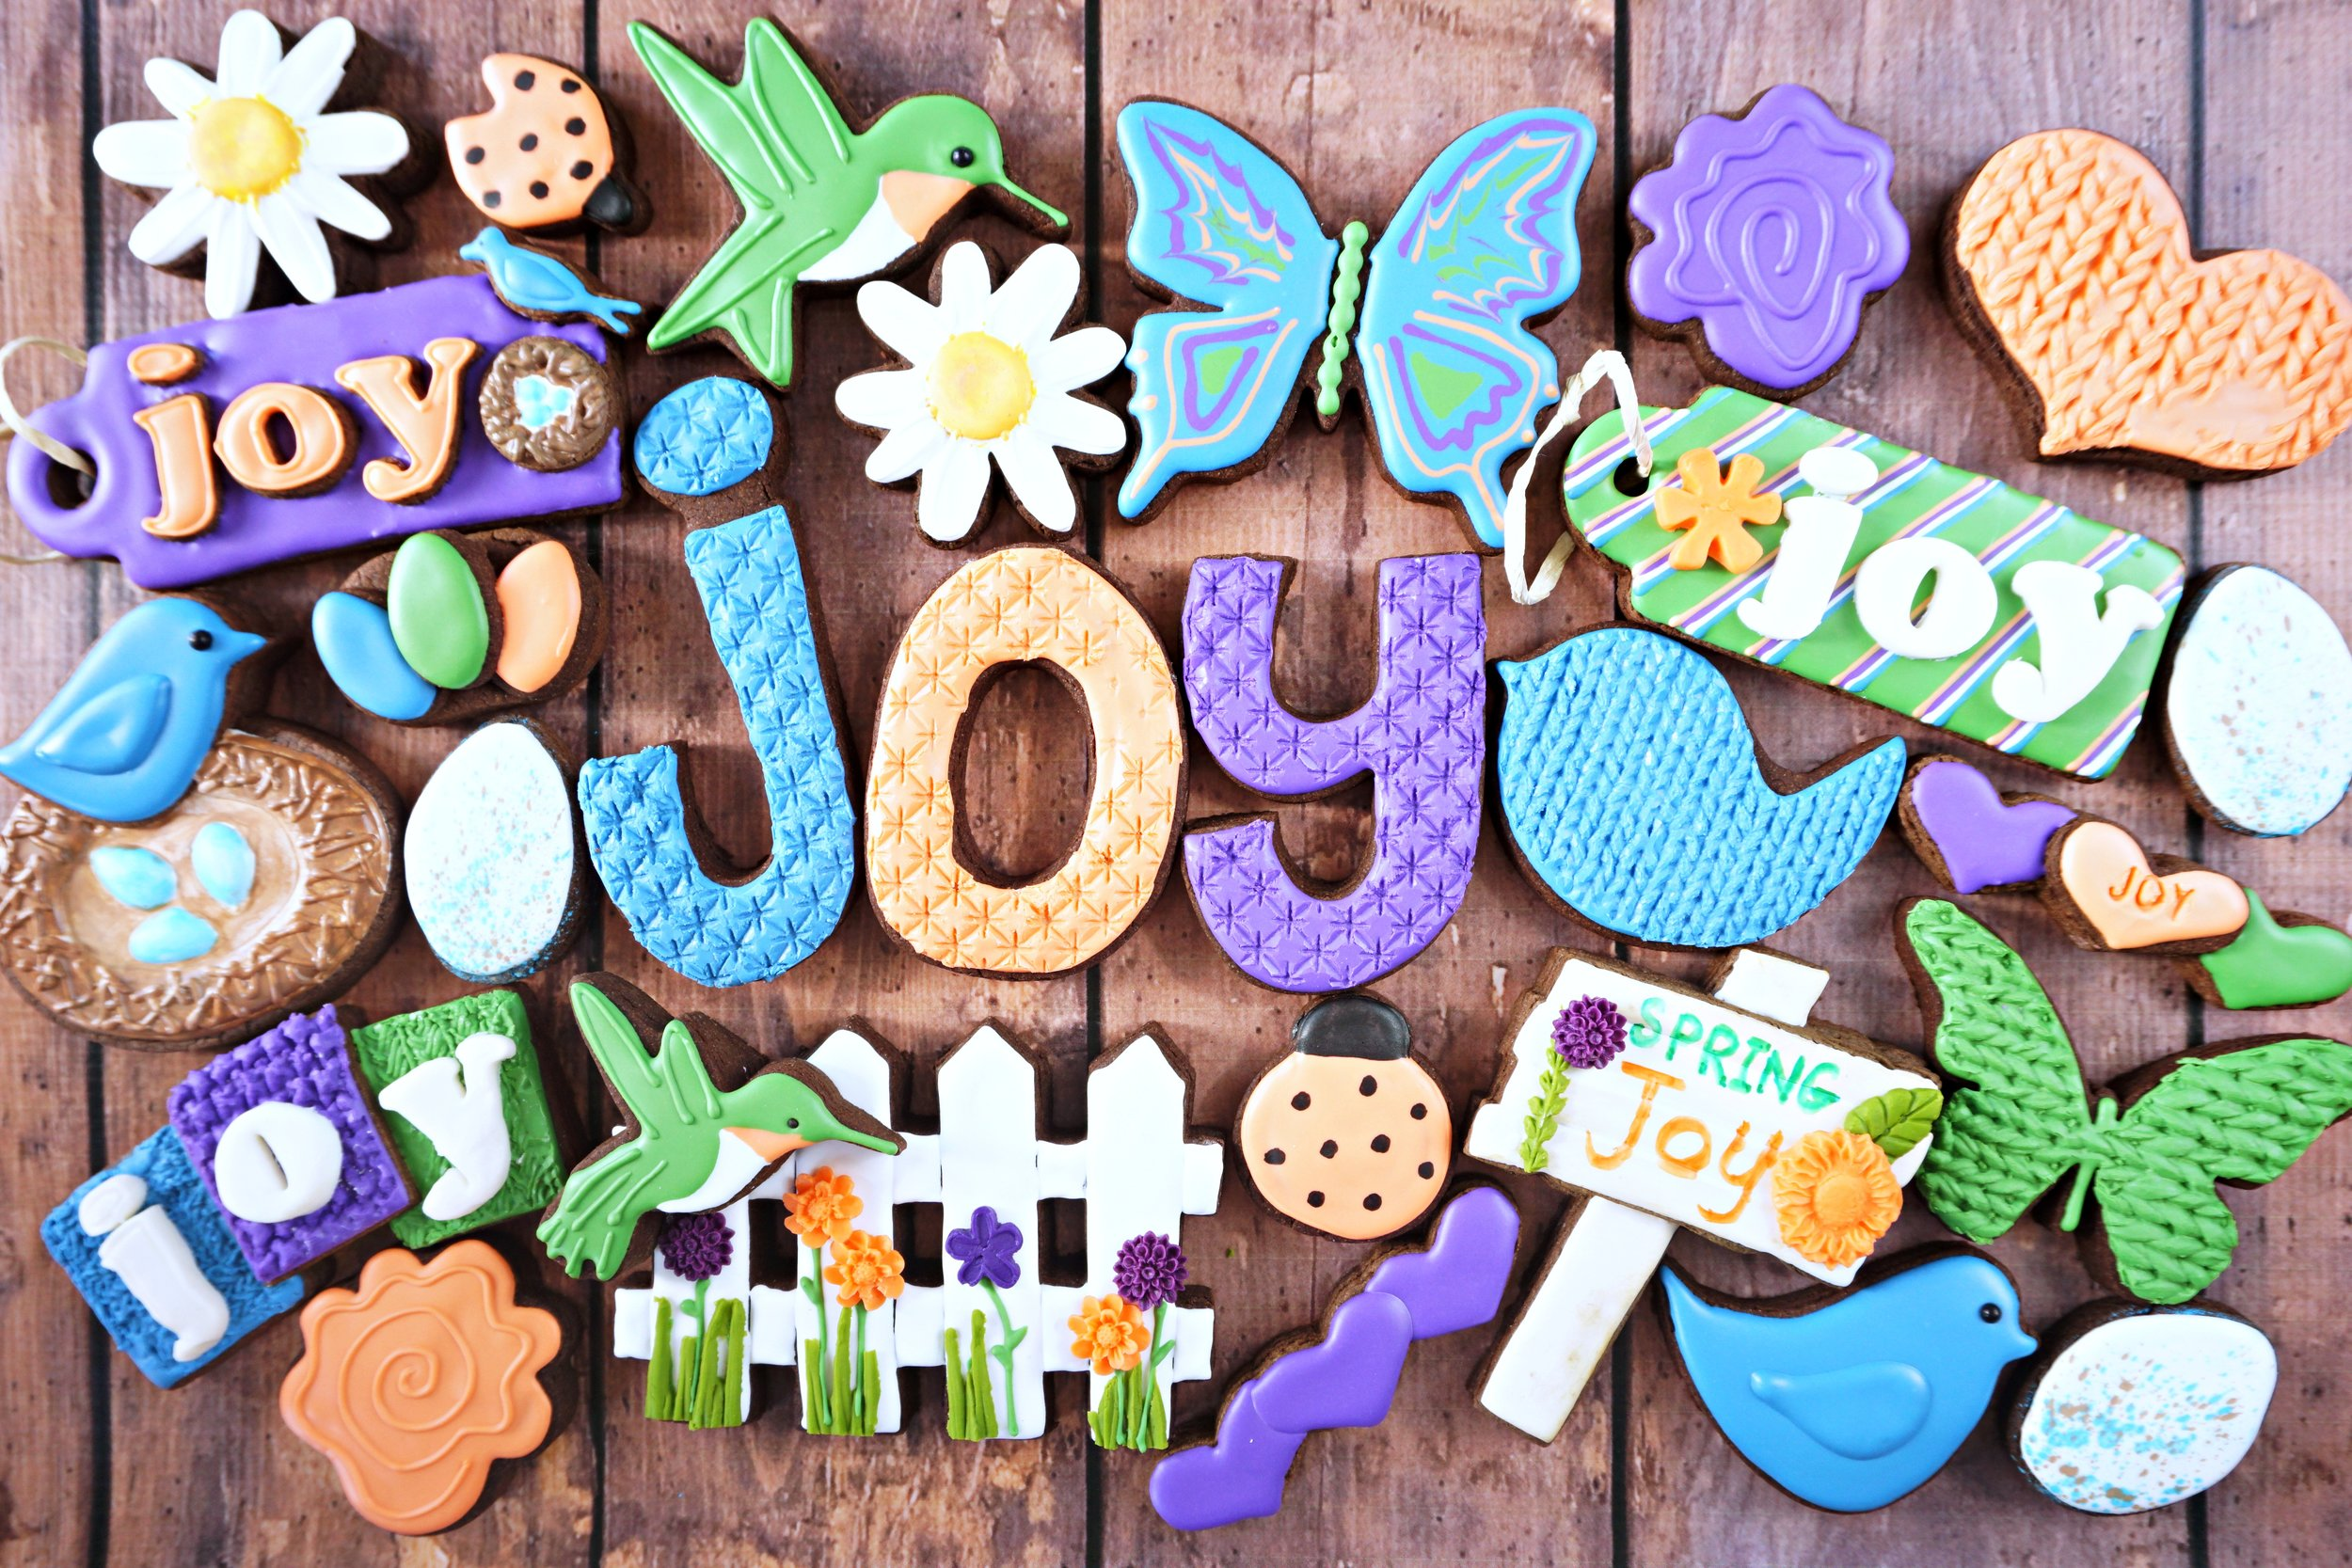 Spring Joy Decorated Cookie Collection